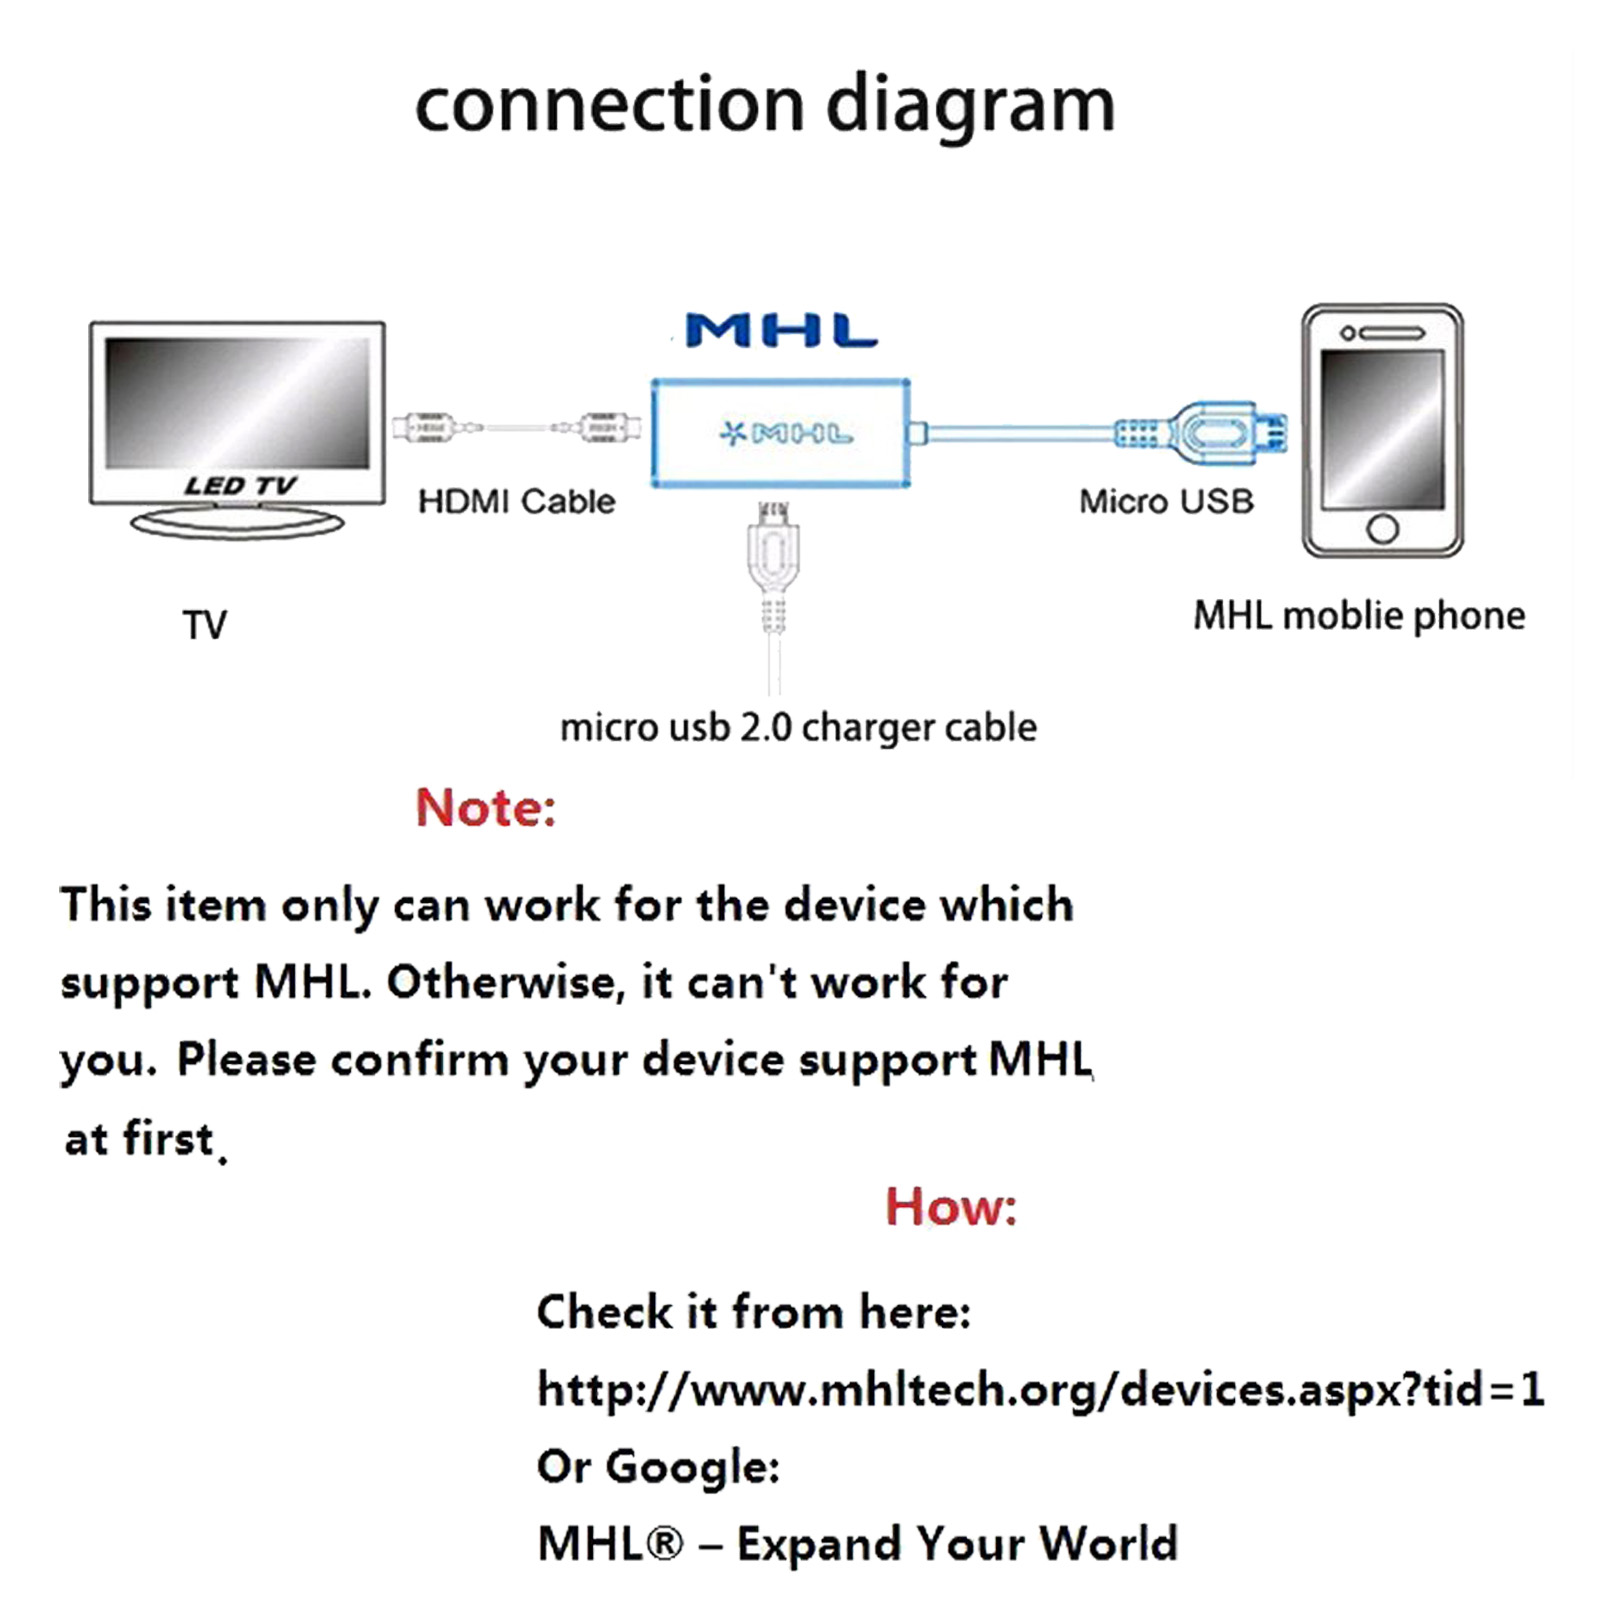 Micro Usb 20 Mhl 5pin To Hdmi Cable Adapter 1080p Hdtv For Android Phone Charger Wiring Diagram Yes We Wanna Be Your Friend